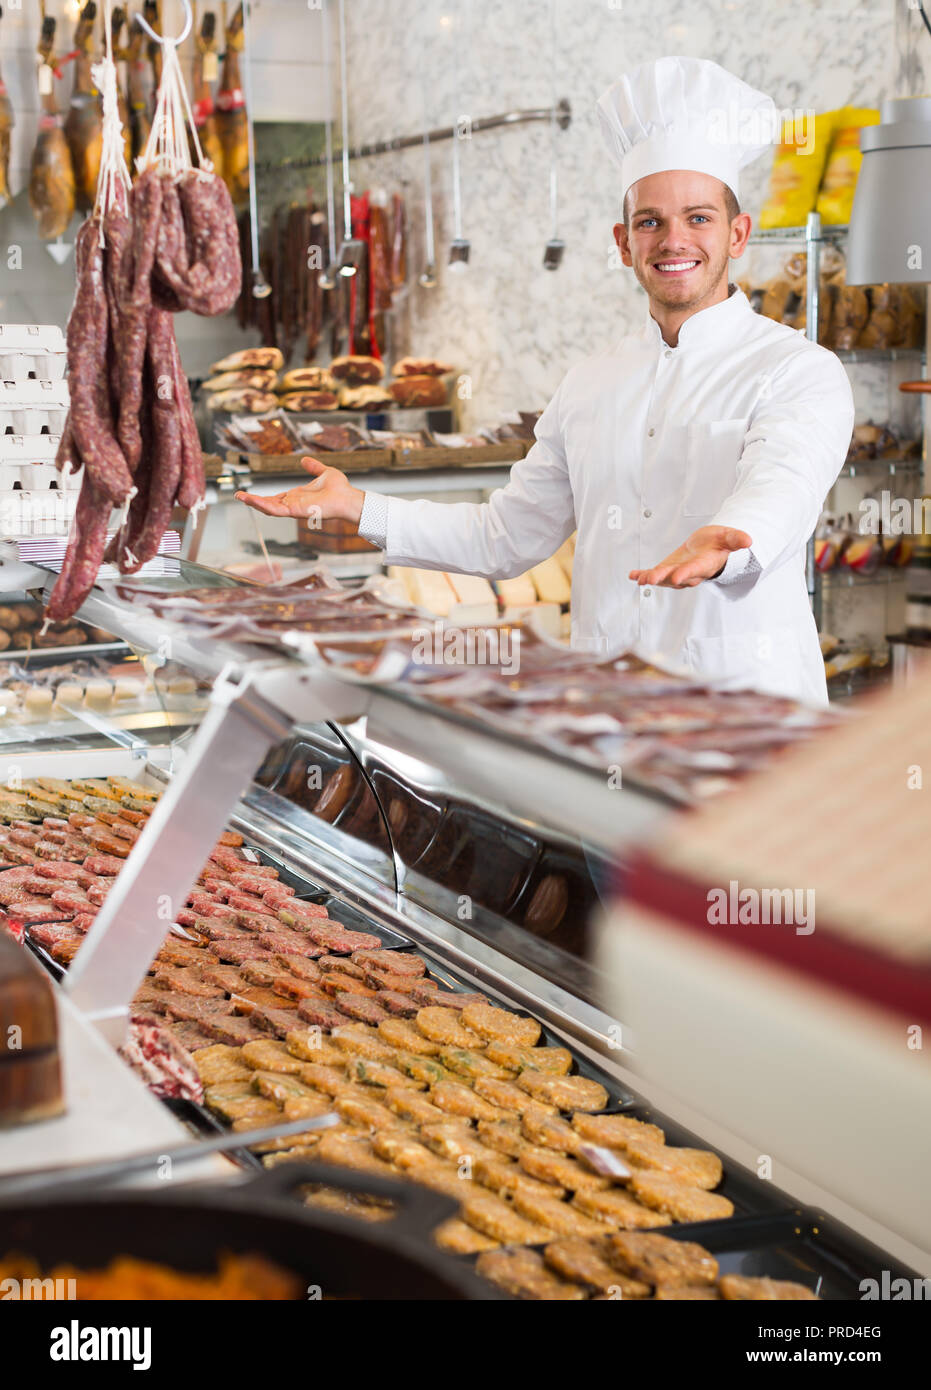 Glad ordinary male seller working at meat market - Stock Image